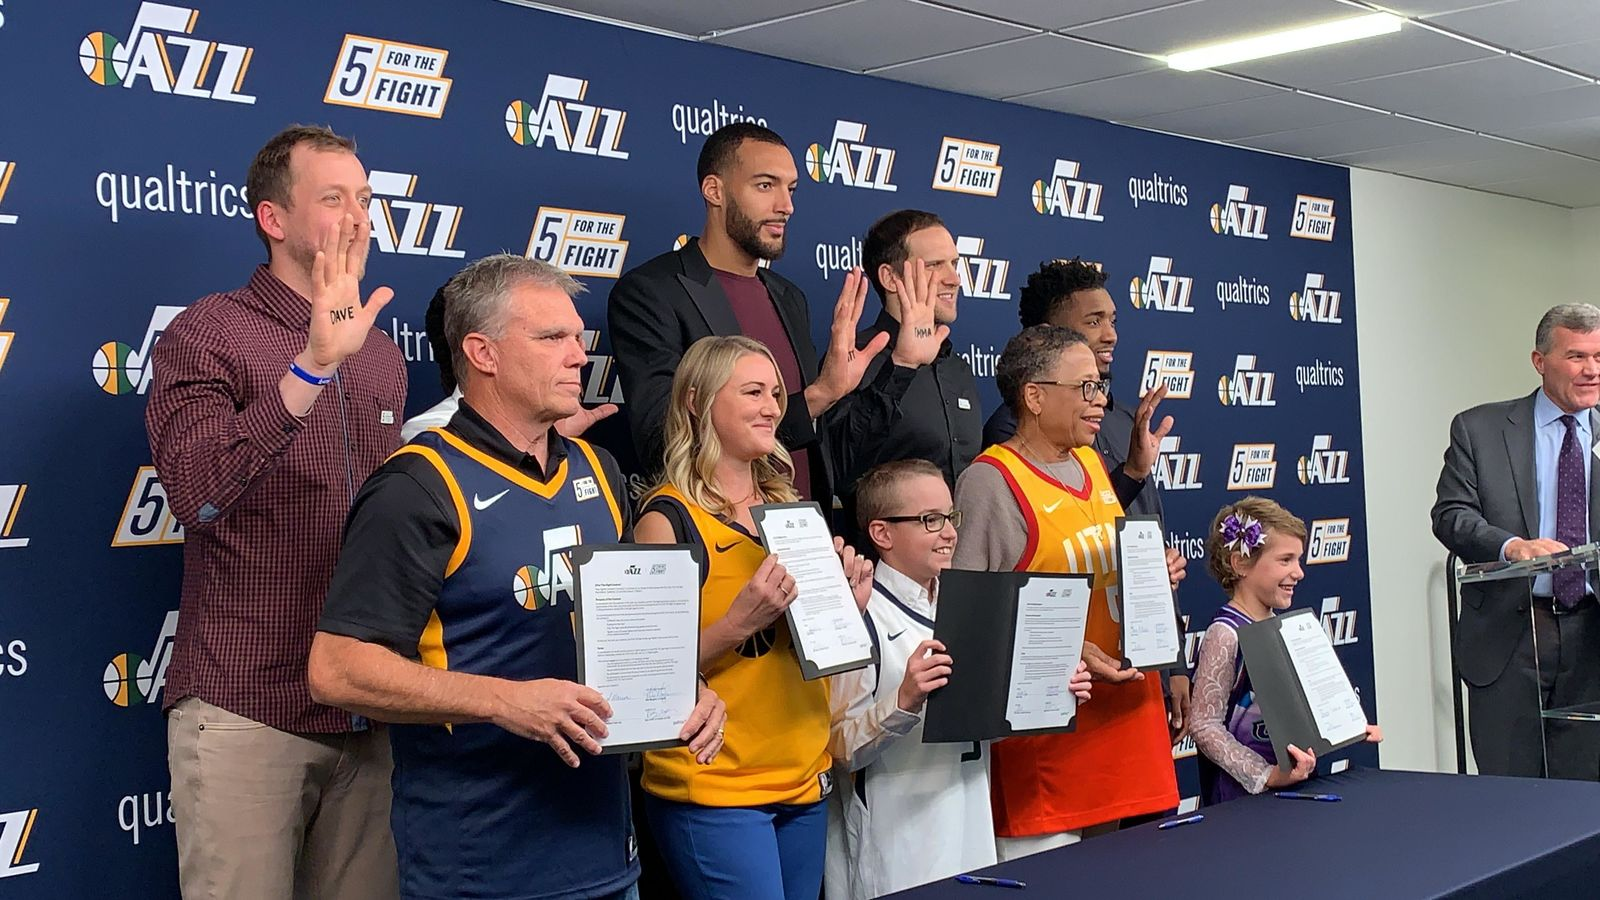 "Everyone poses for a photo op promoting ""5 For The Fight"" which aims to fund cancer research. (L-R) Joe Ingles (Jazz forward), Dave Warren (cancer fighter), Mike Conley (Jazz point guard), Dani Phillips (cancer fighter), Rudy Gobert (2-time Defensive Player of the Year, Utah Jazz Center) with Wyatt Page (young cancer fighter), Emma Houston (cancer fighter), Bojan Bogdanovic (Utah Jazz forward), Donovan ""Spida"" Mitchell (Utah Jazz guard) with Baylee Semrow (young cancer fighter), Jim Olson (Utah Jazz president). (Photo: Adam Forgie, KUTV)"